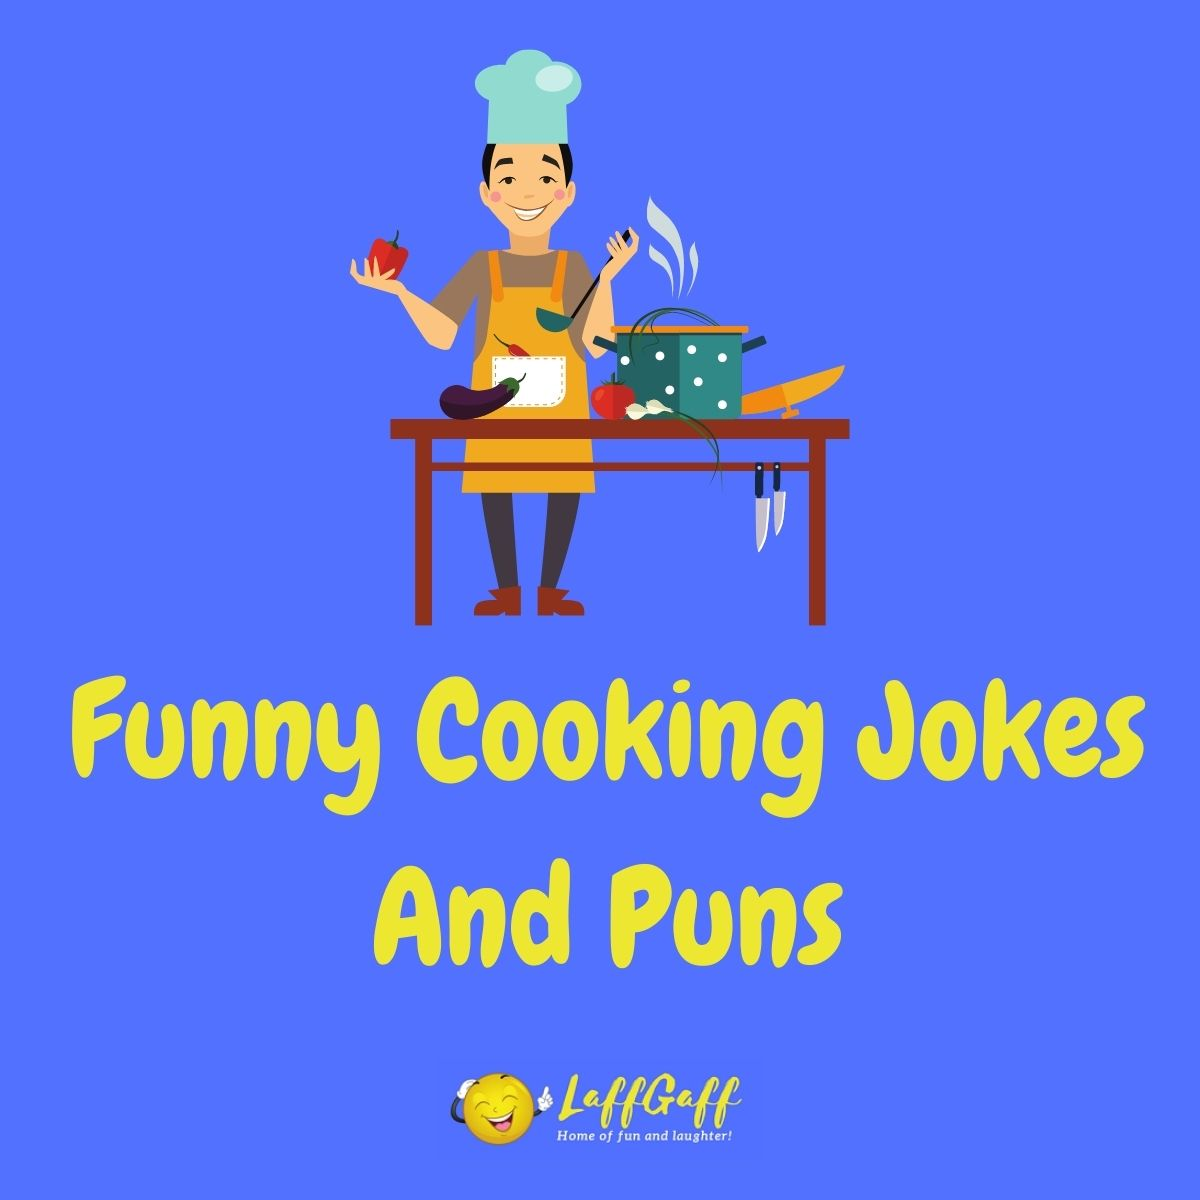 Featured image for a page of funny cooking jokes and puns.